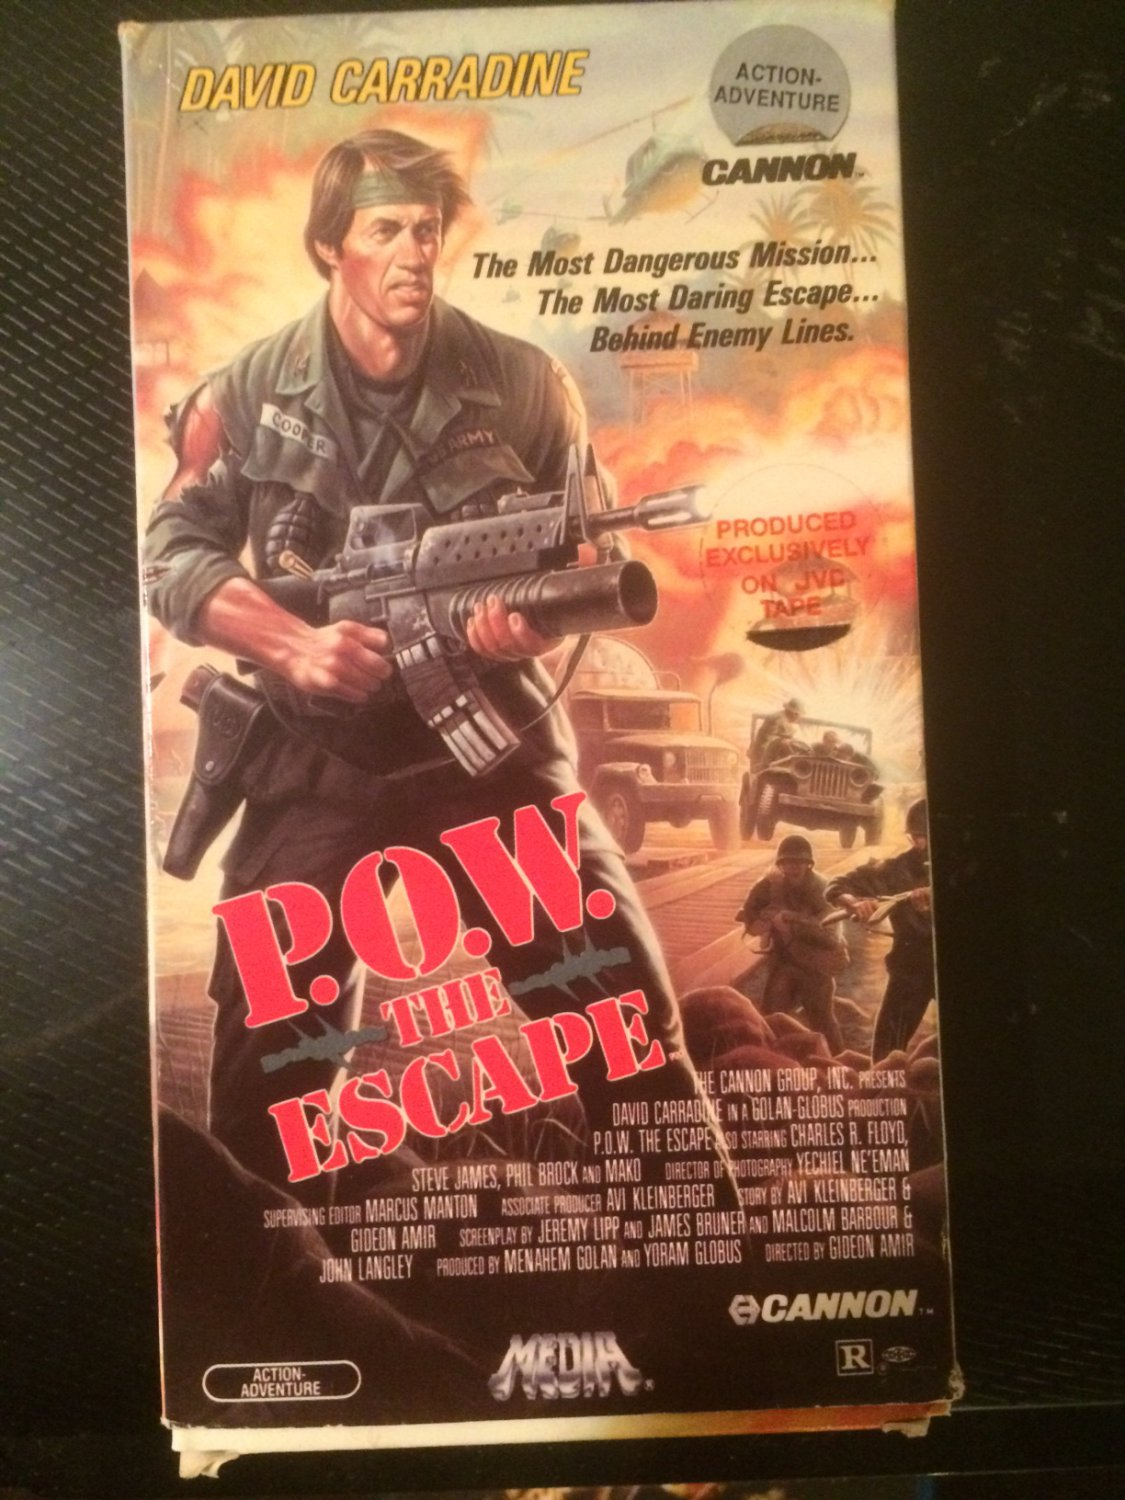 P.O.W. The Escape - VHS - Used - NOT ON DVD